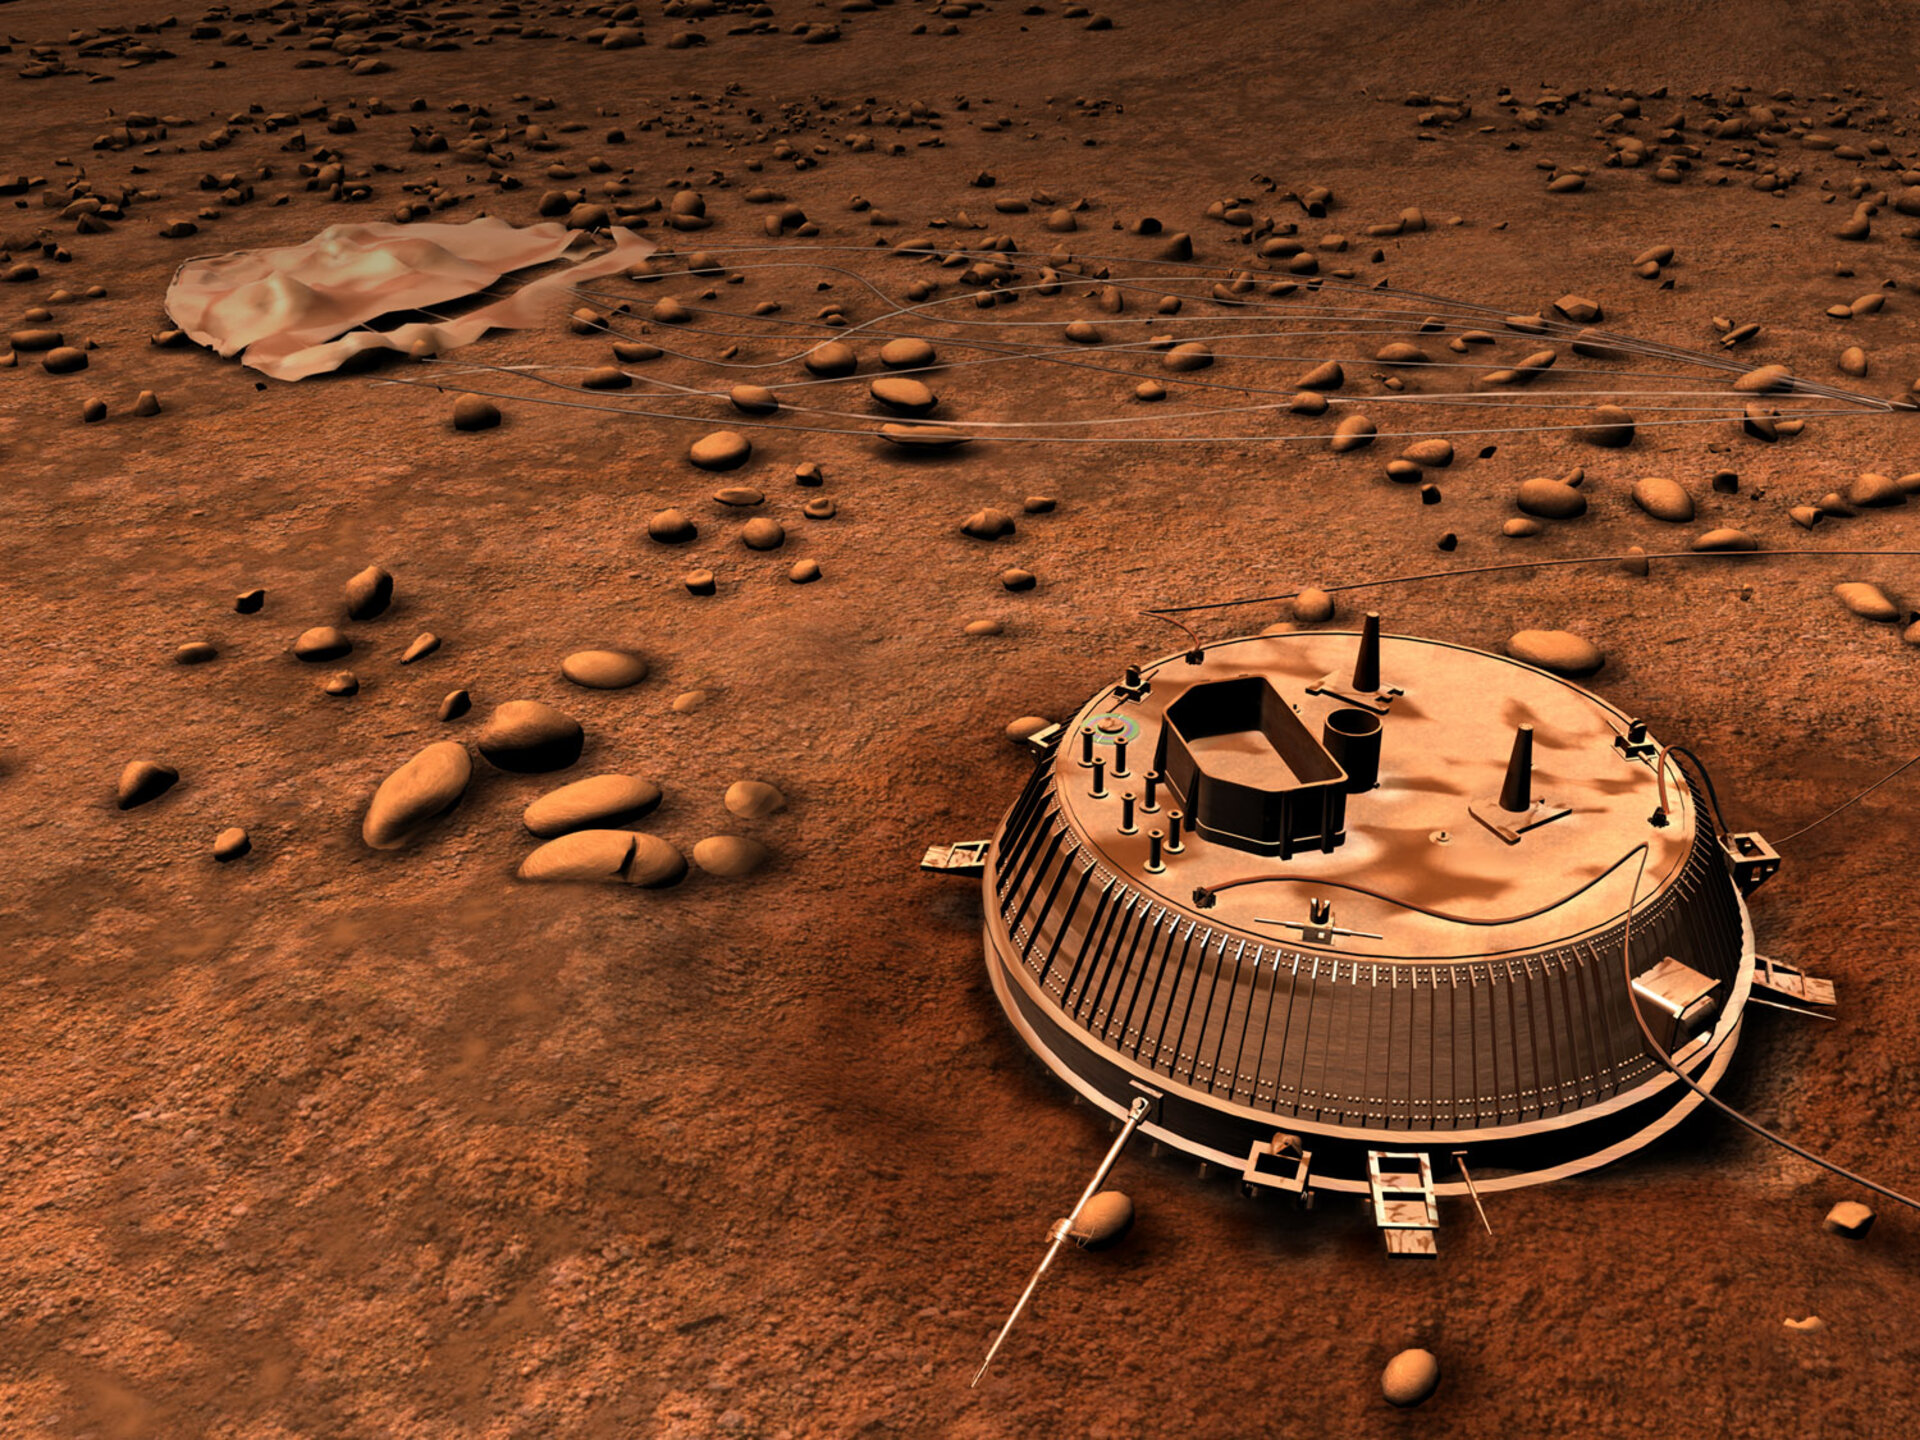 Artists's impression of Huygens on Titan